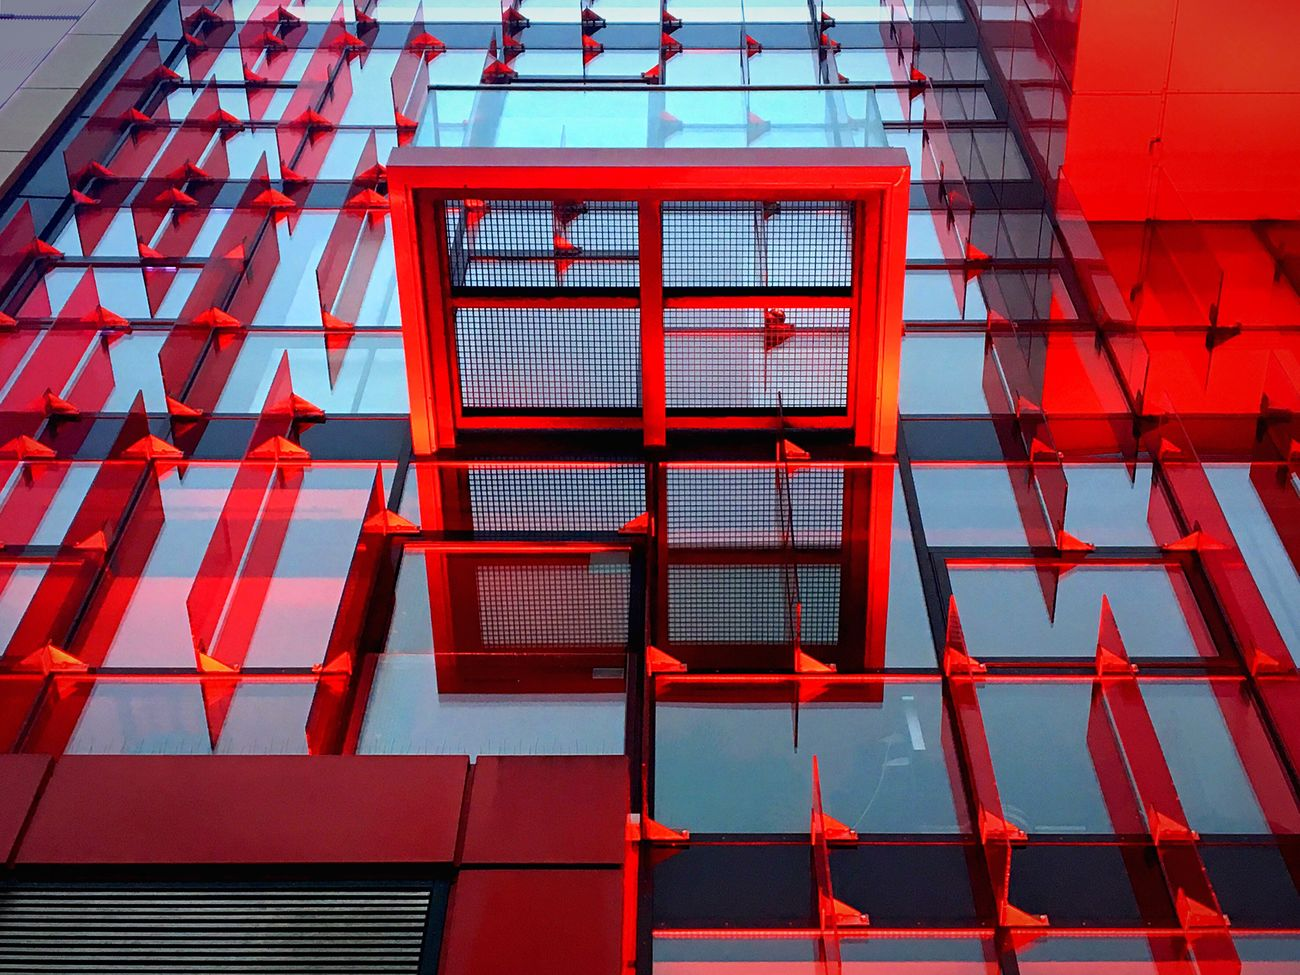 redlight. Red Architecture Shining Window Built Structure Building Exterior Façade Facades The Architect - 2017 EyeEm Awards No People Architectural Detail Architecture_collection Glass - Material St Pauli Reeperbahn  Hamburg Hamburgmeineperle Close-up Light And Shadow Modern Up Pattern Mirrored Reflection Cocktail Time